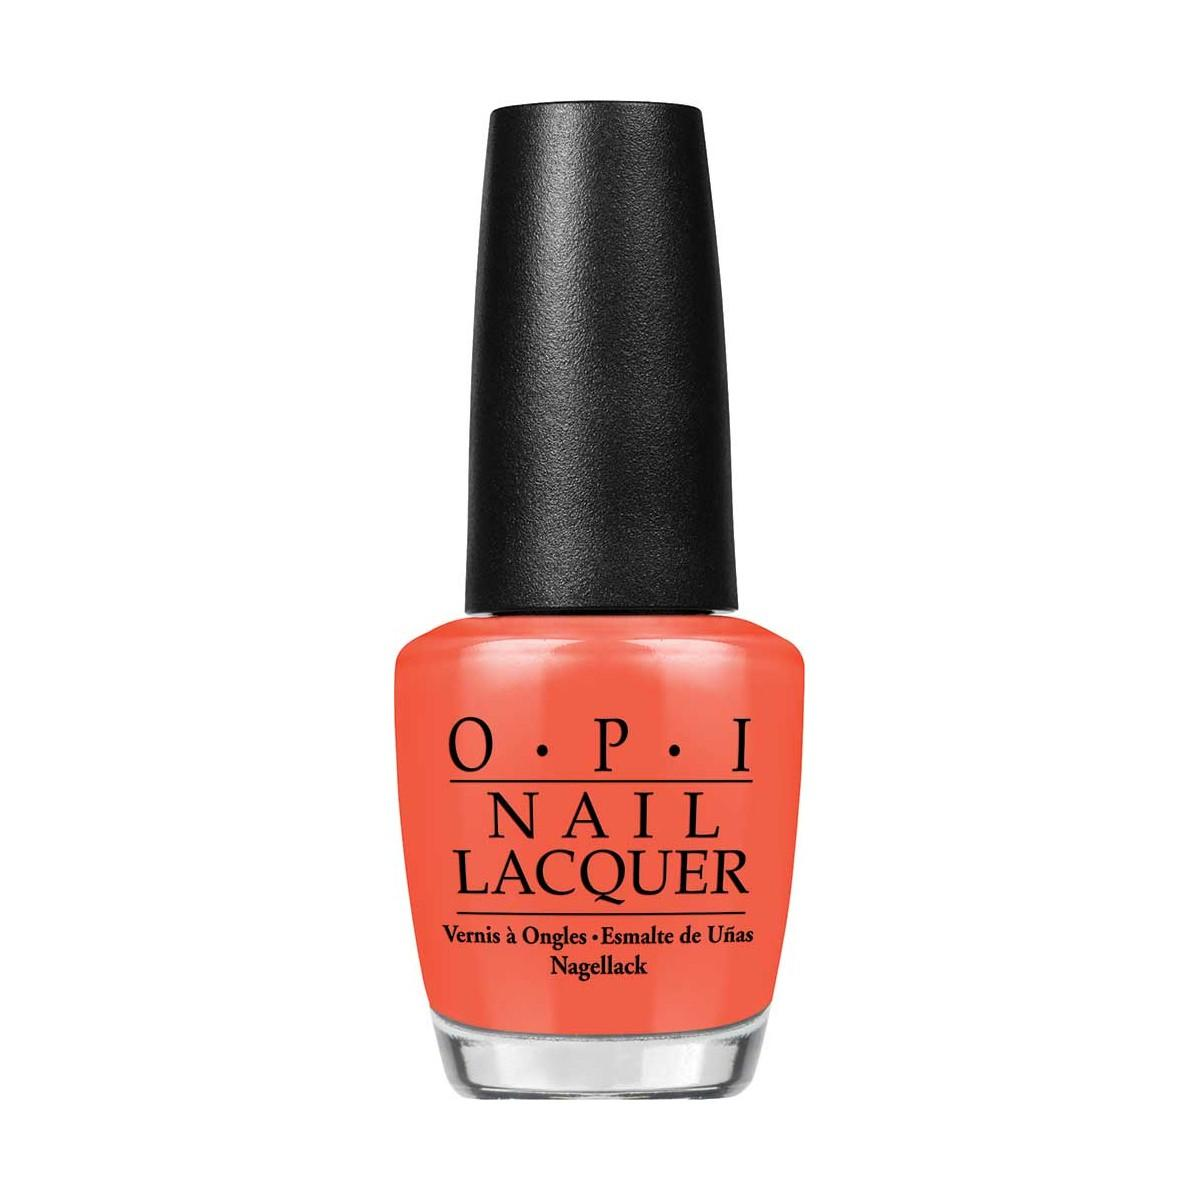 Opi fragrances Nail Lacquer Nlh43 Hot Spicy